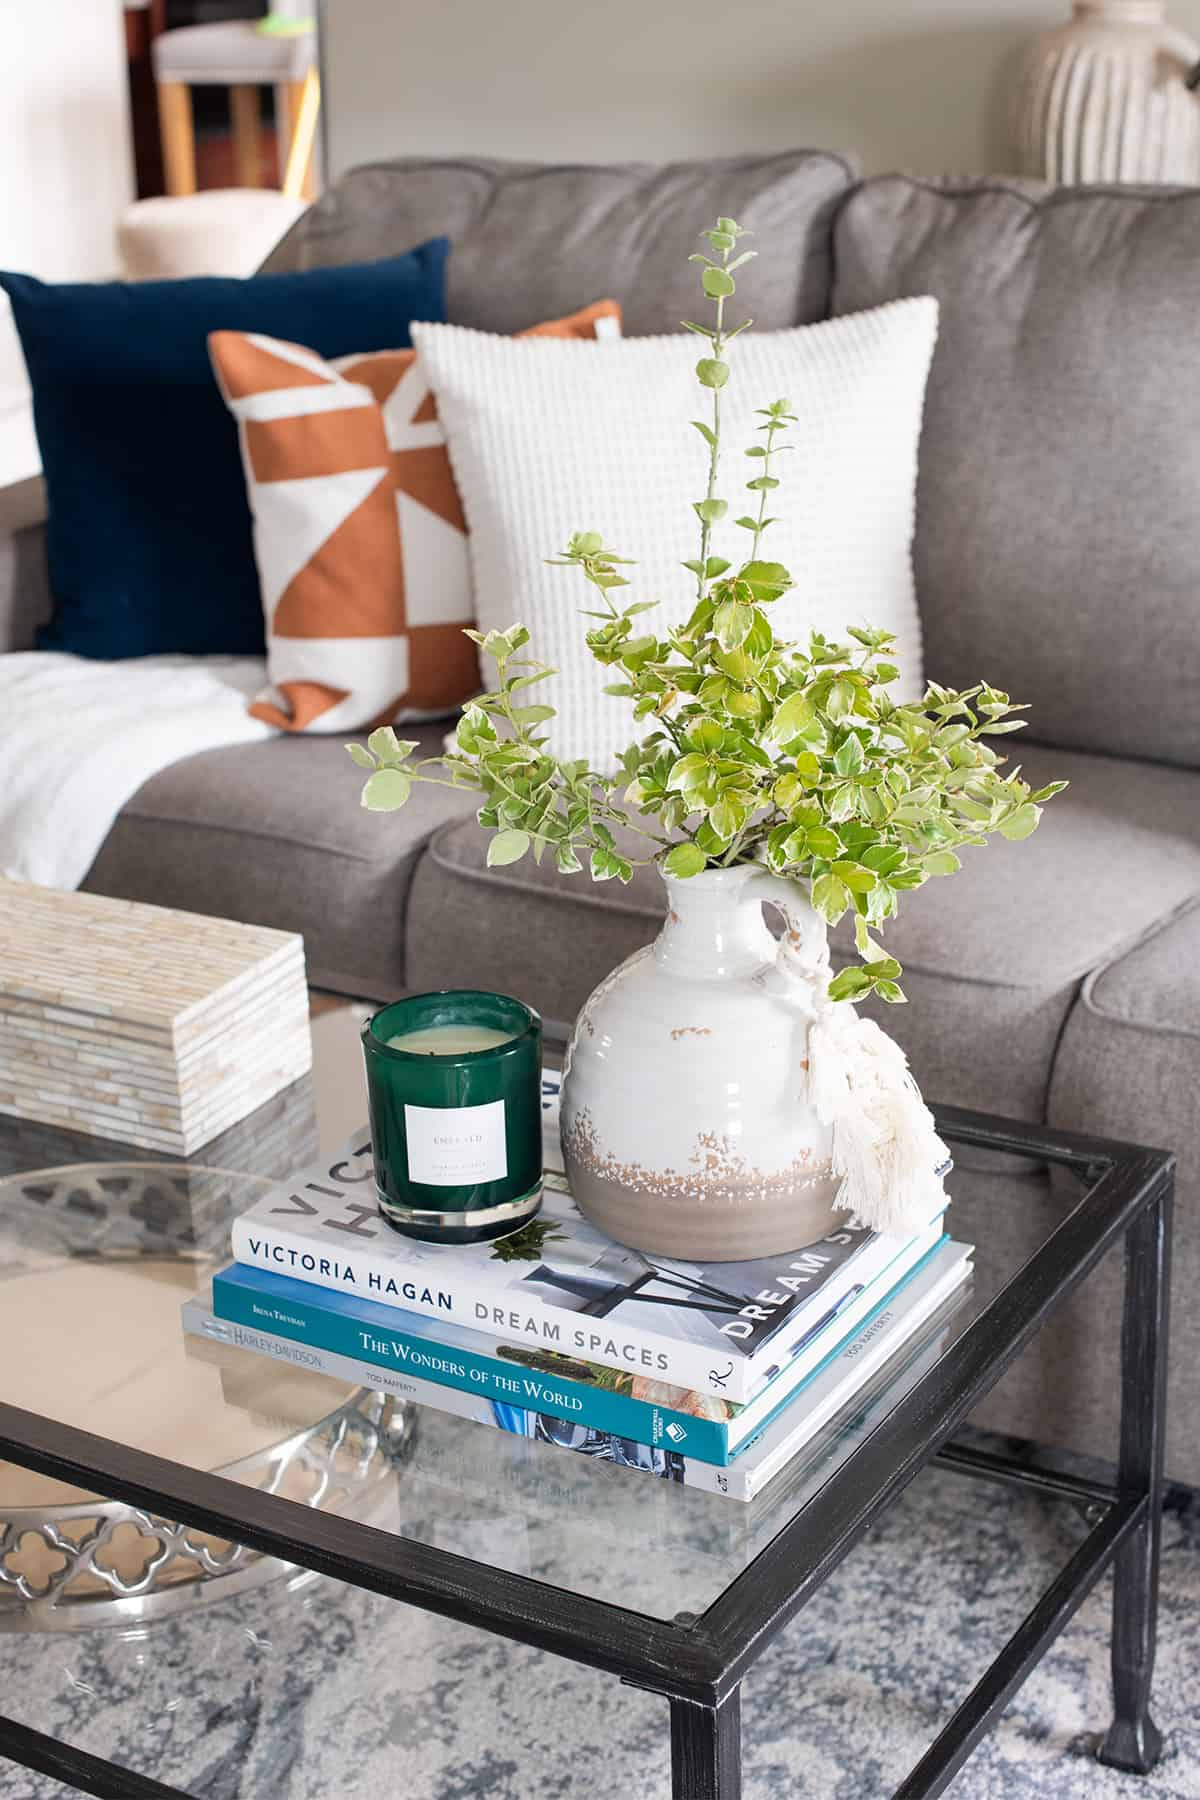 Coffee Table decor with vase, candle, and books.